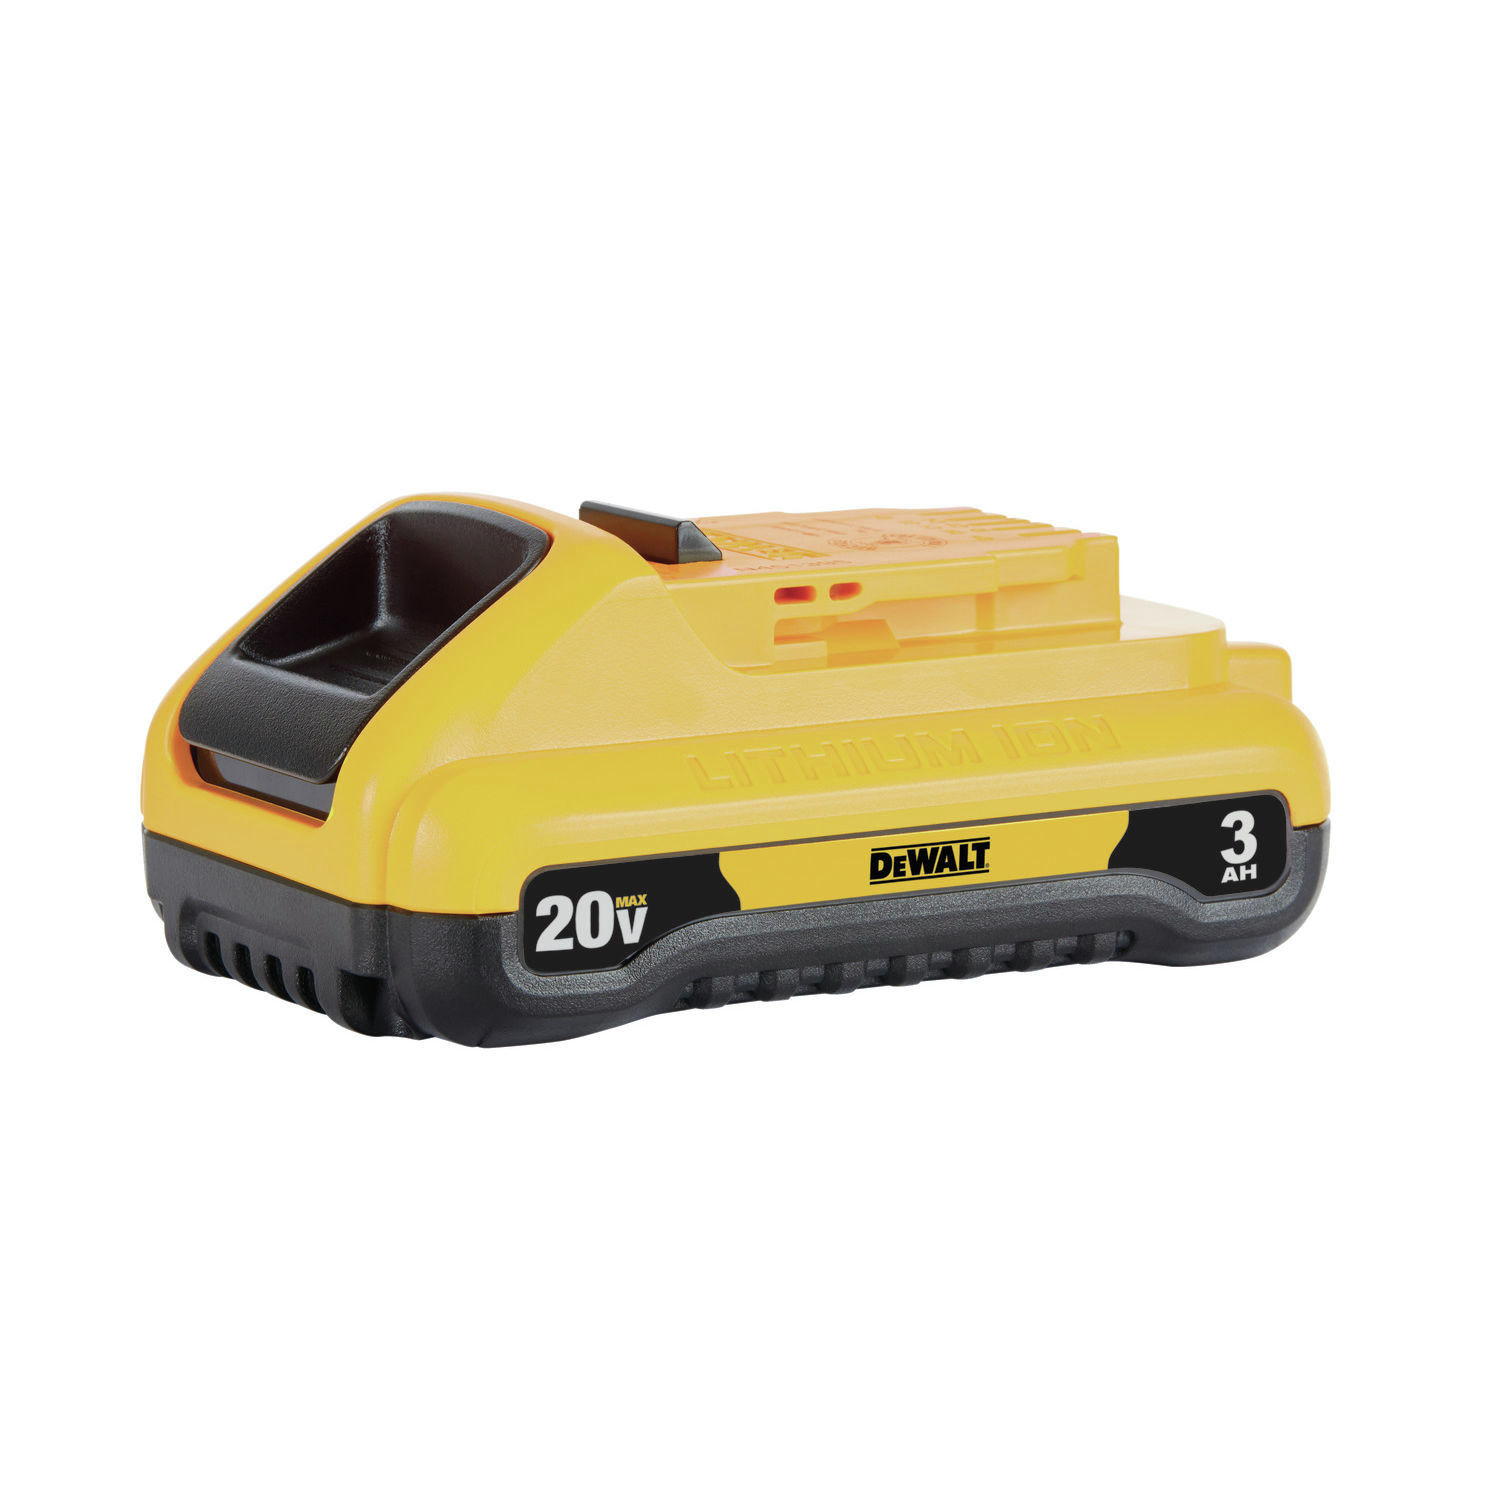 Dewalt DCB230 battery